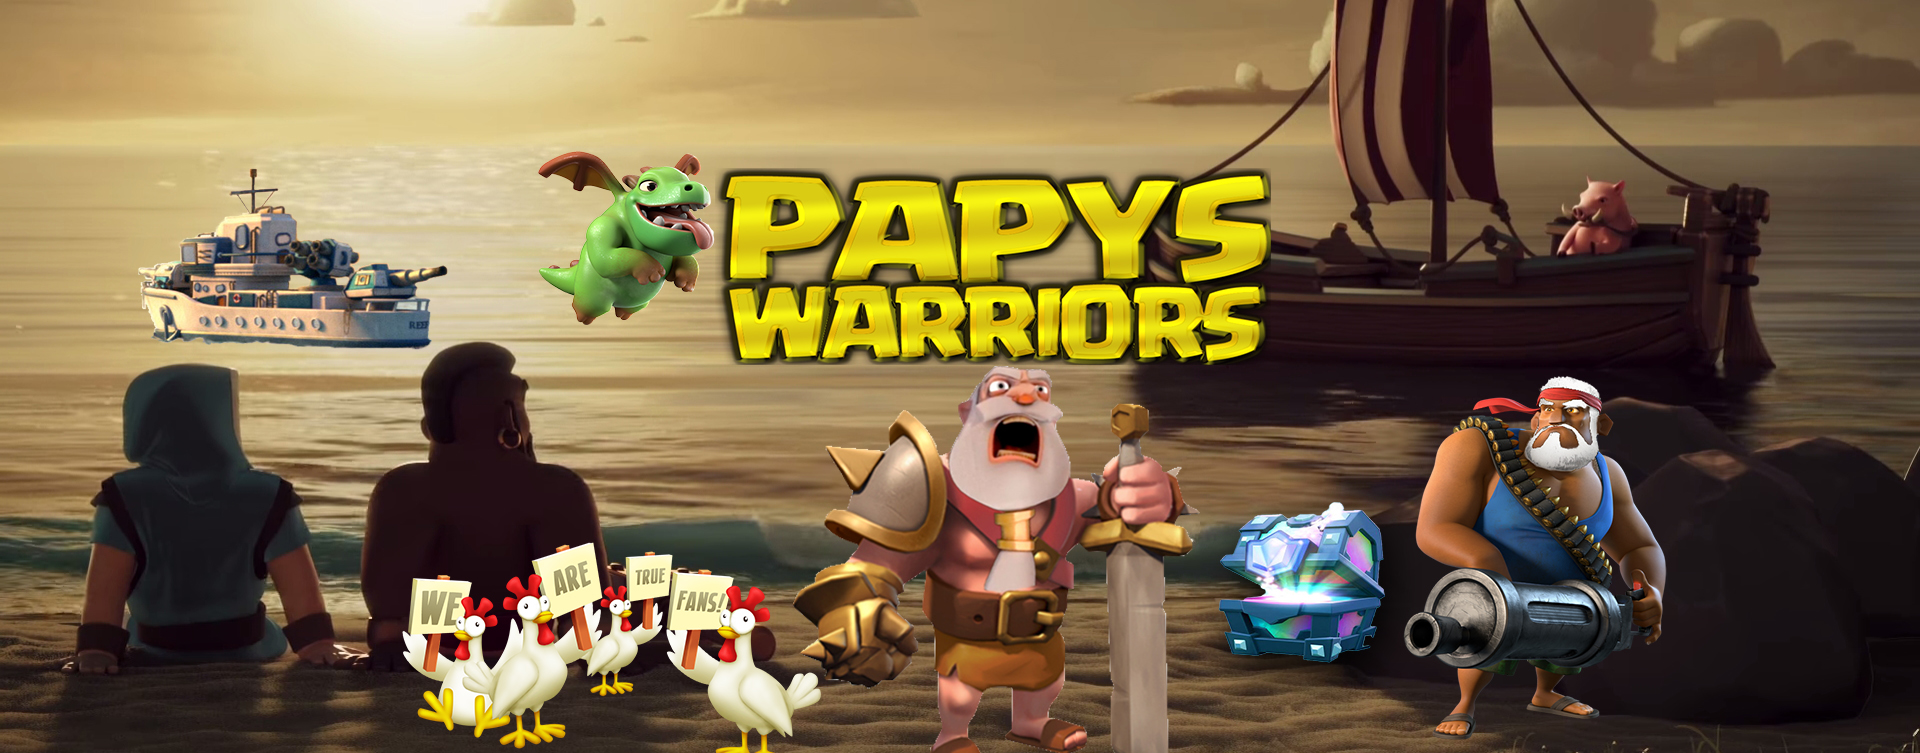 Papys warriors banniere twitter communaute jeux mobile